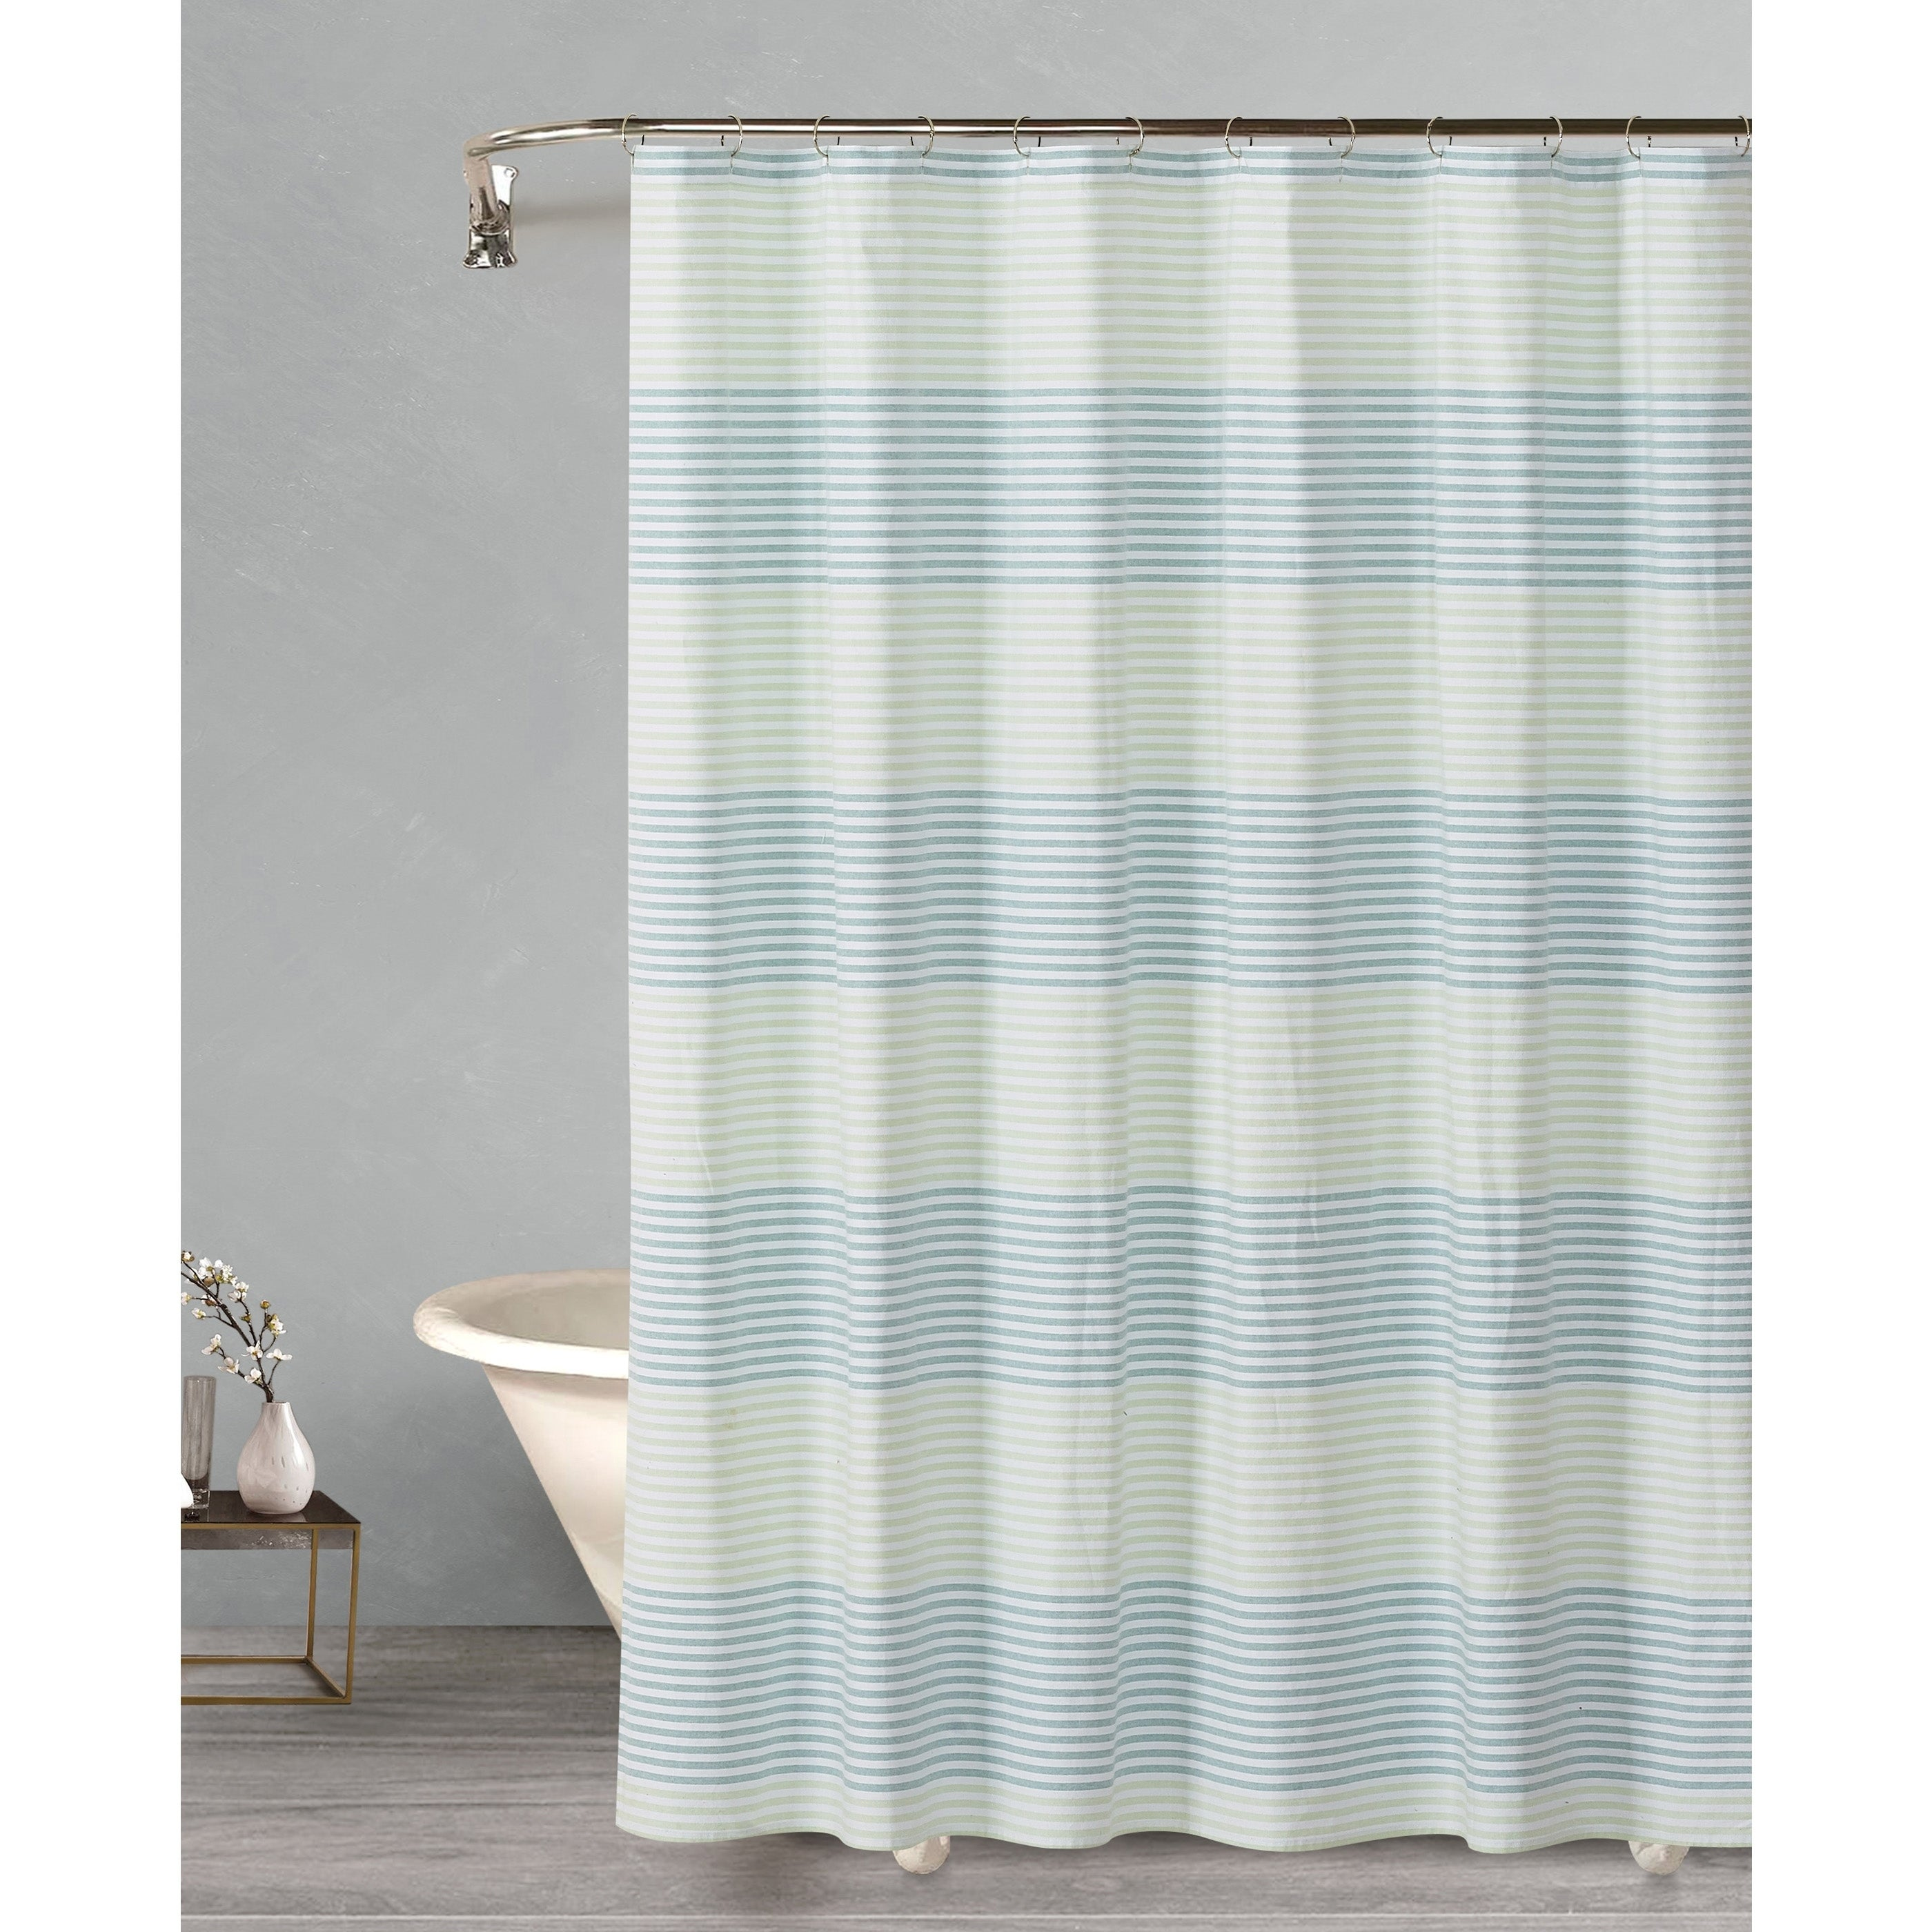 Shop Style Quarters Cabana Stripe Green Cotton Shower Curtain for ...